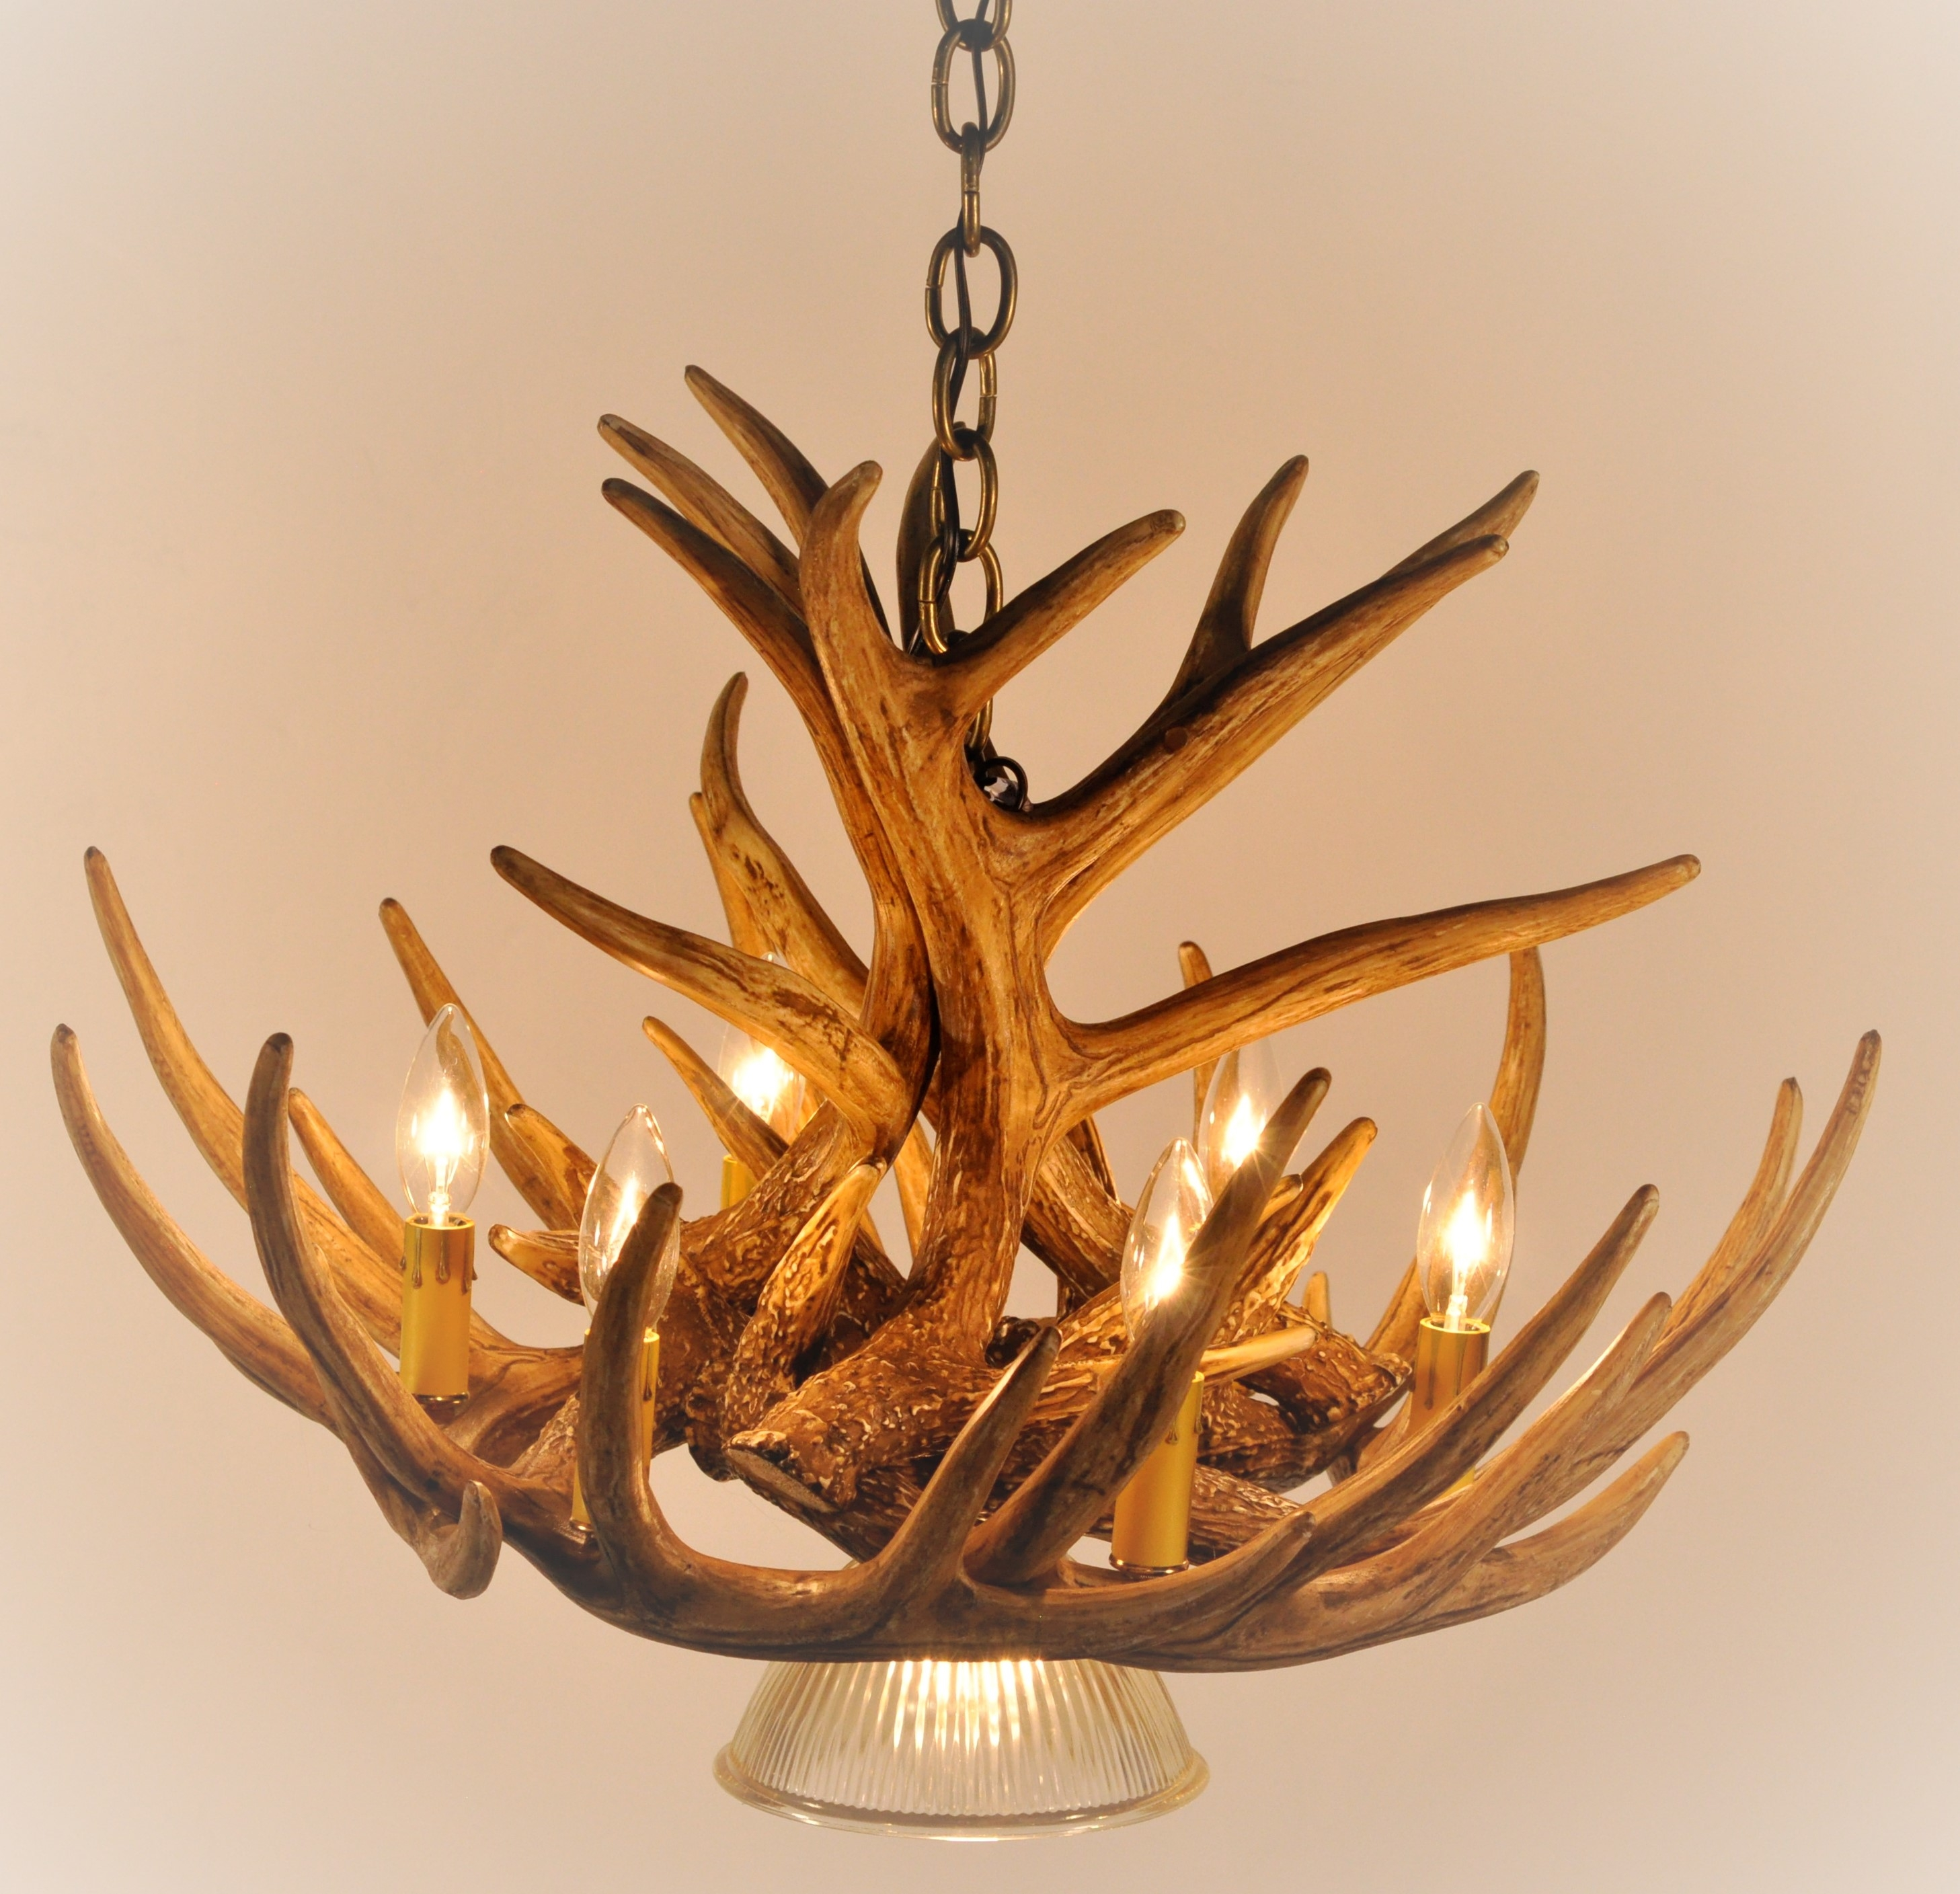 Whitetail Deer 9 Antler Cascade Chandelier With 1 Downlight Inside Large Antler Chandelier (#11 of 12)